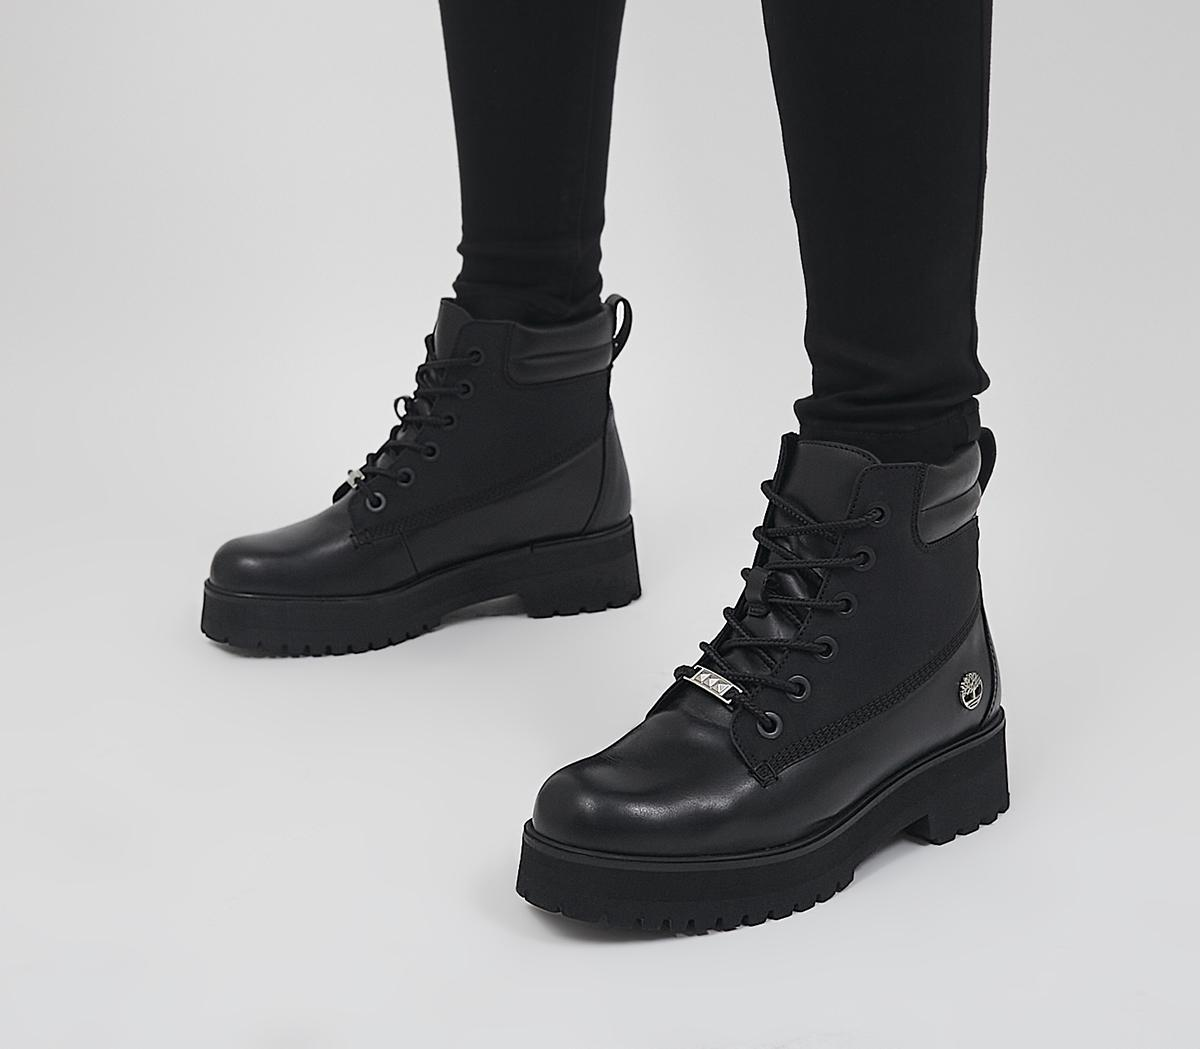 6 Inch Stack Boots